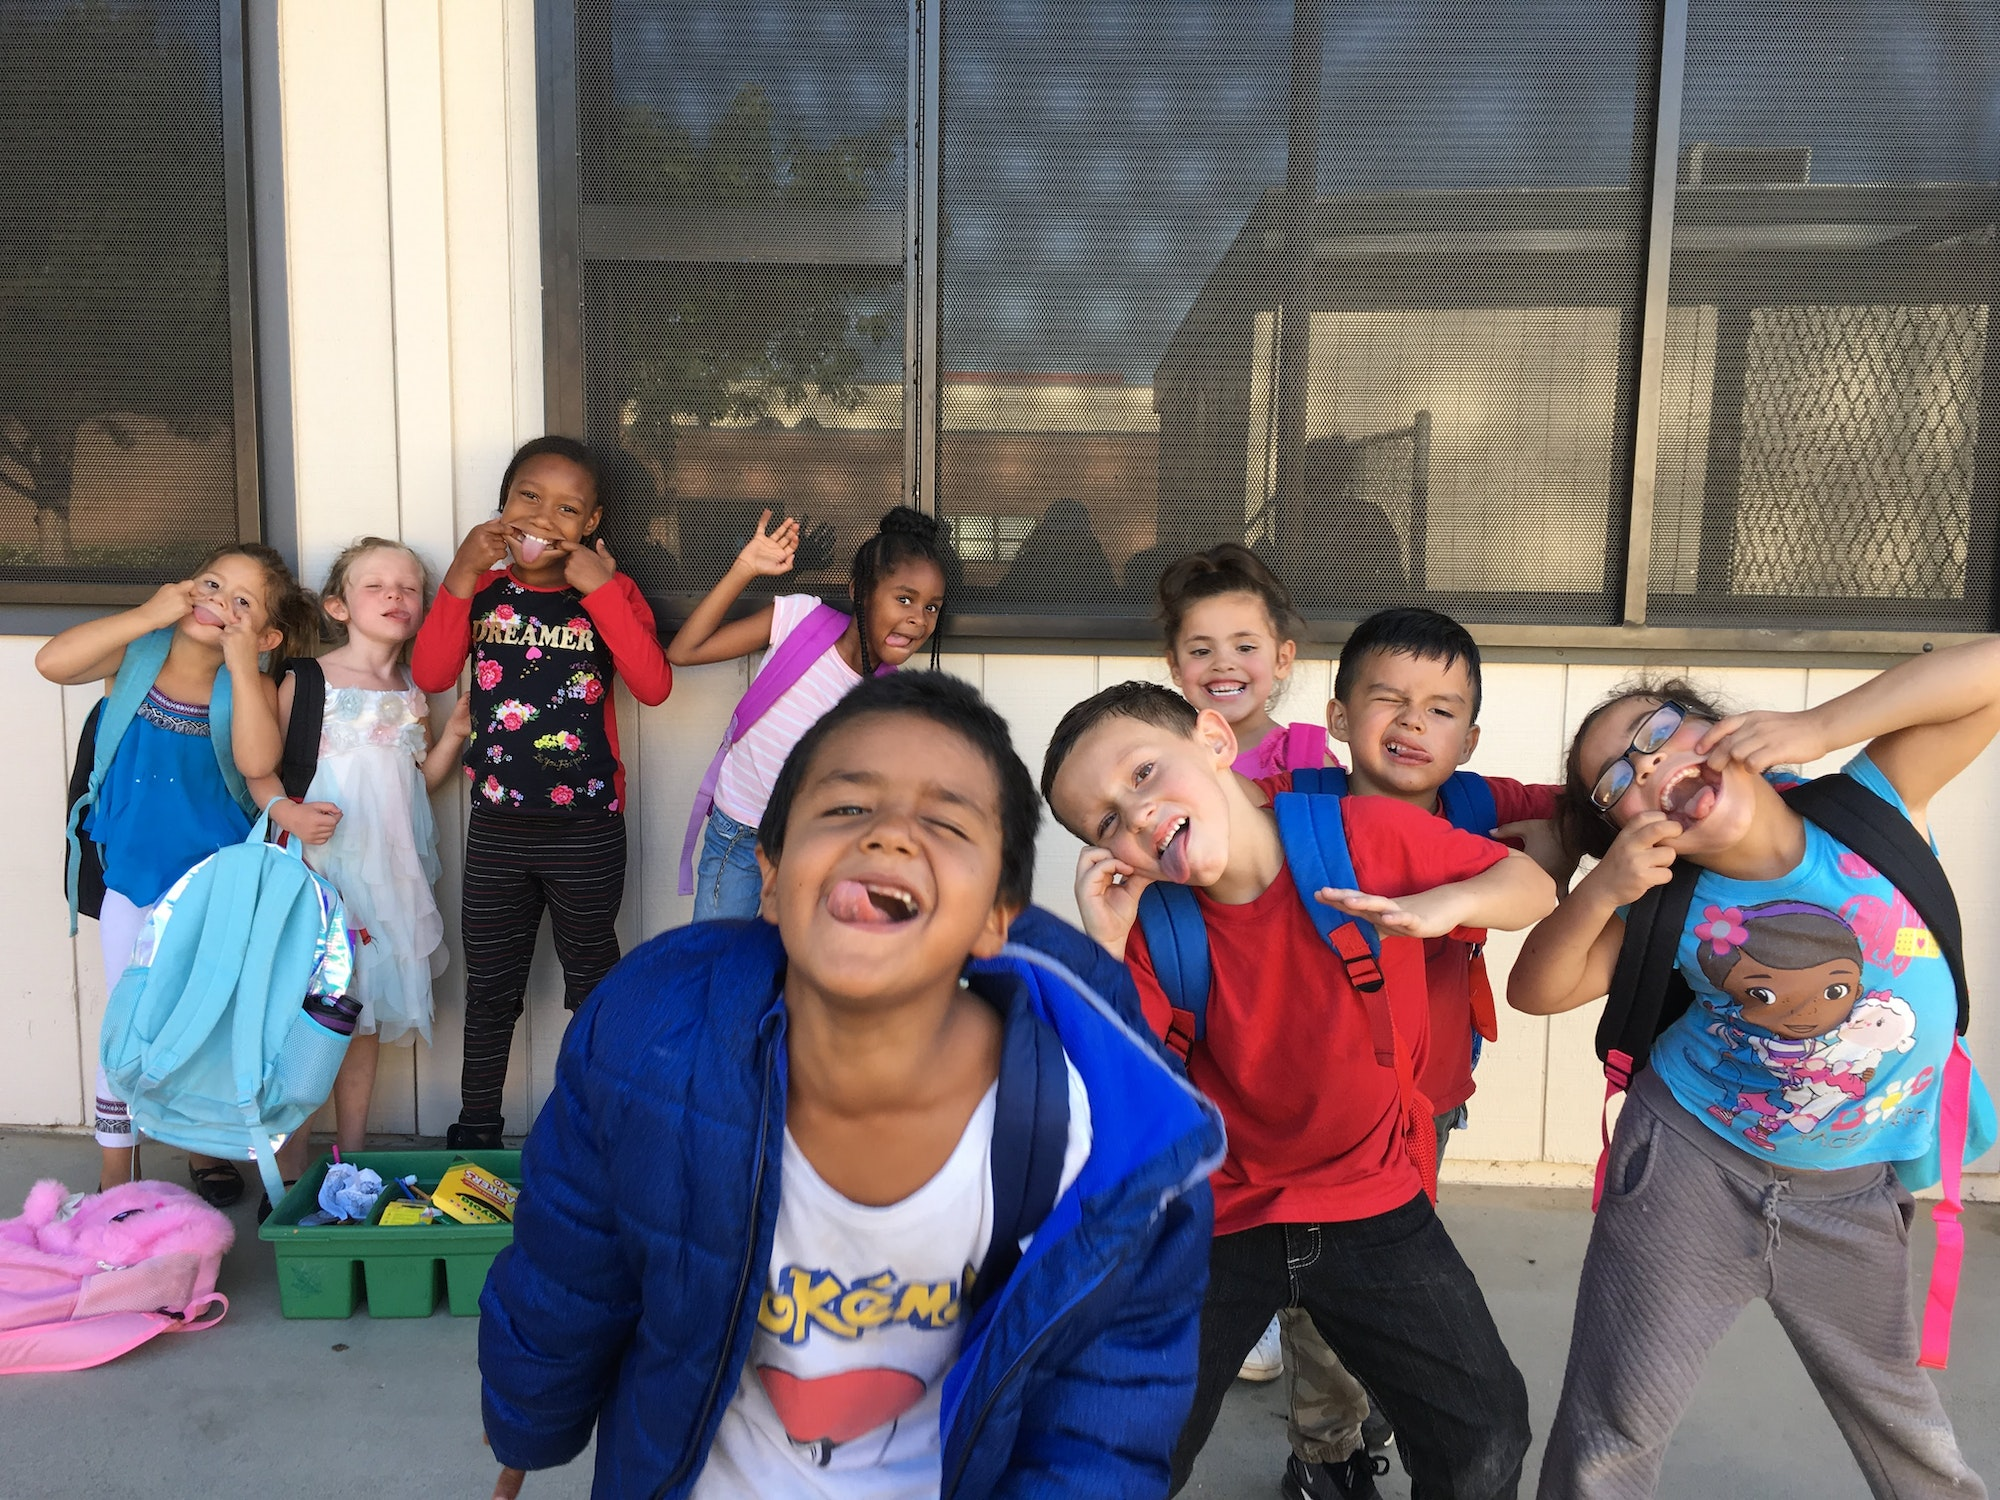 Students making silly faces